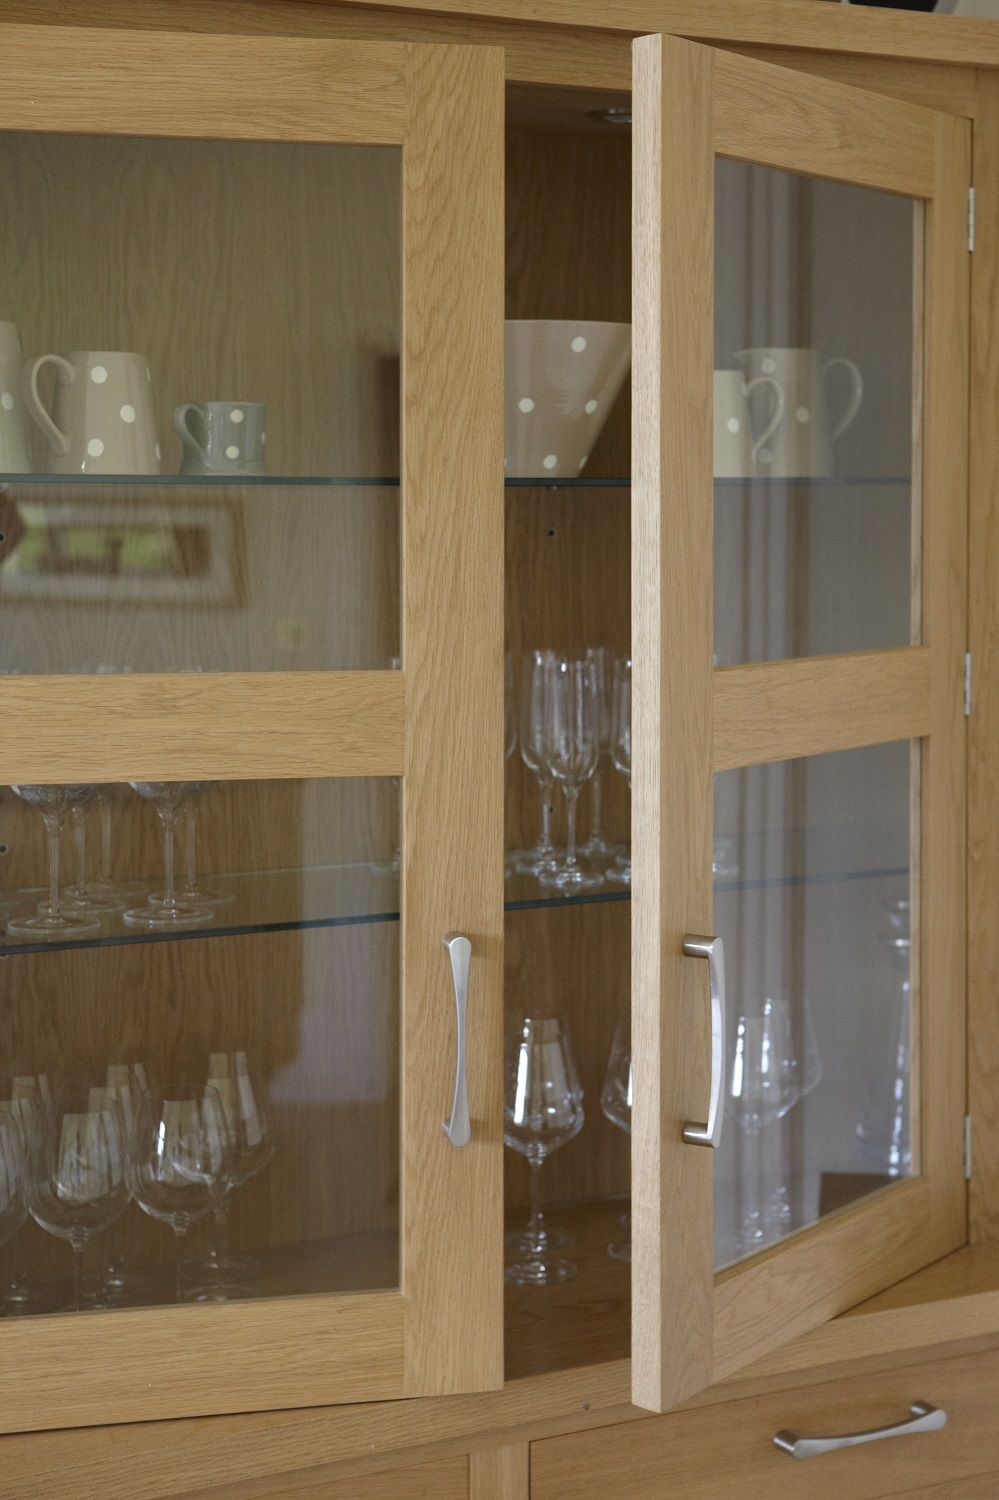 Glass Kitchen Cupboard Units Reveal Glass Shelving For Displaying Glassware And Crockery